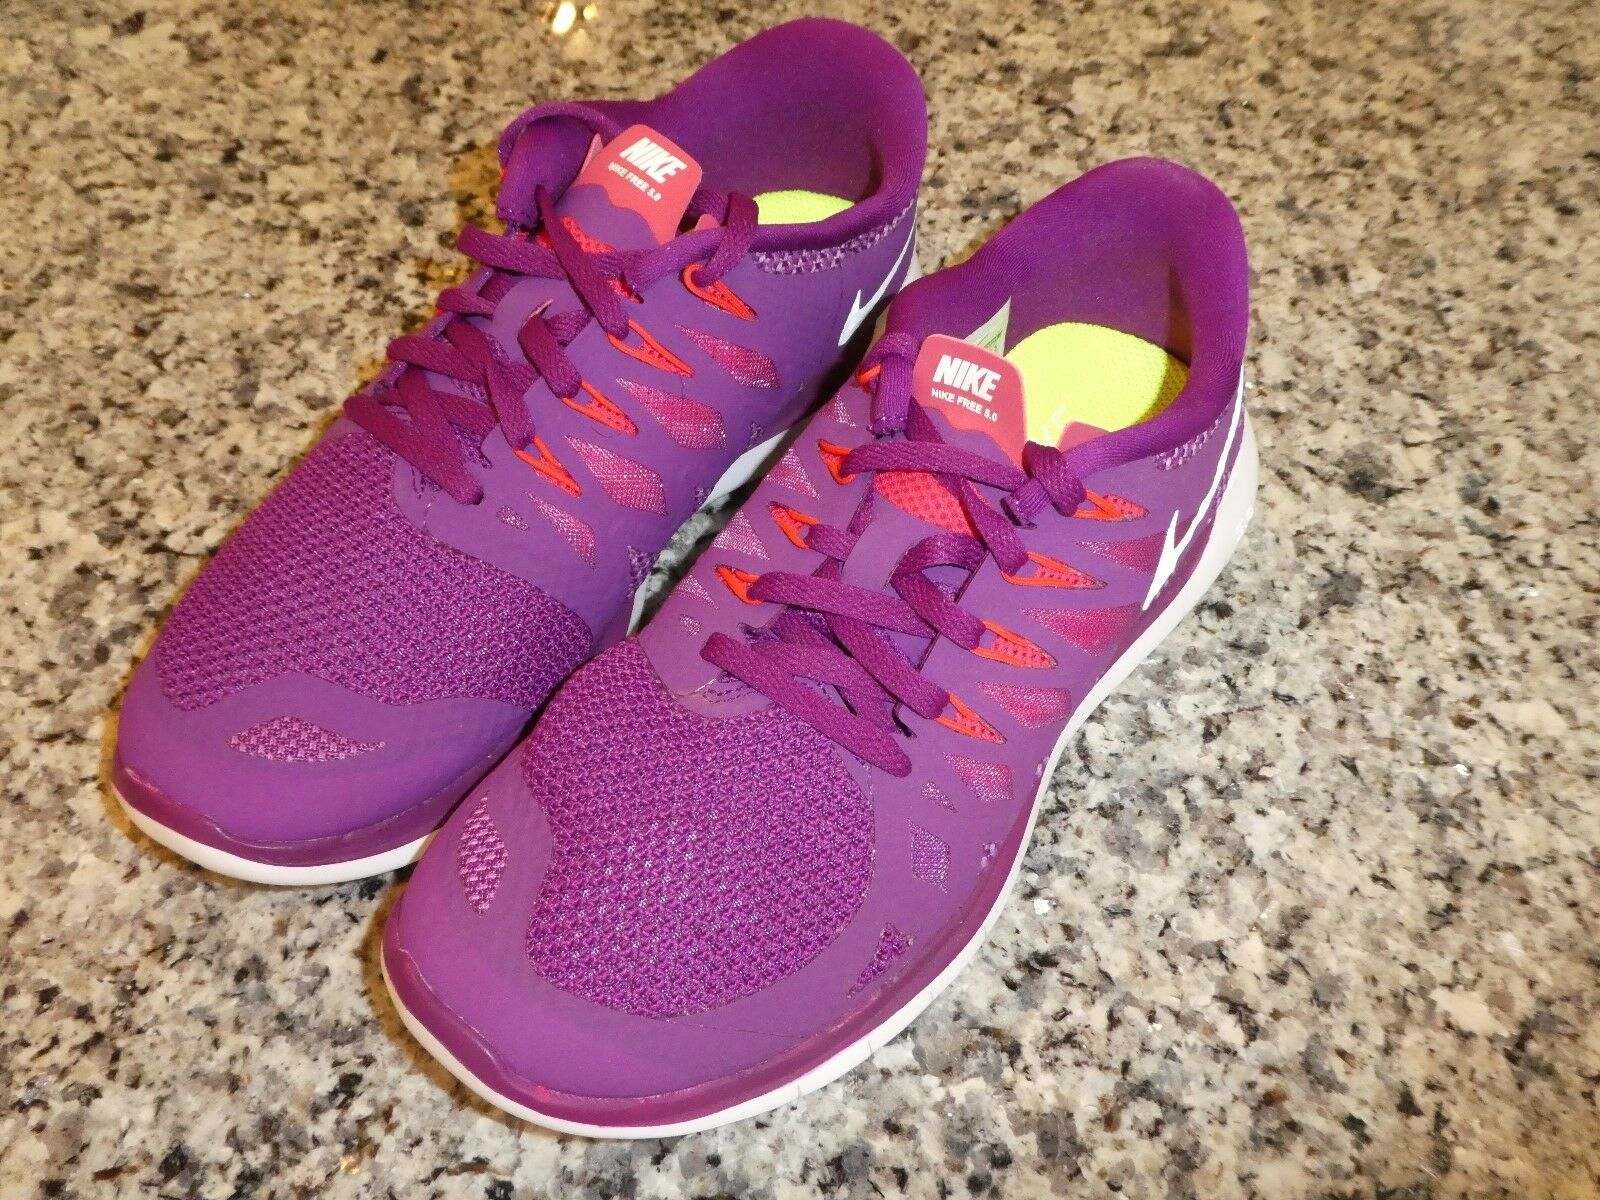 788023c6ce0b Nike womens Free 5.0 size 6 shoes shoes shoes sneakers new 642199 501 4d2fa5